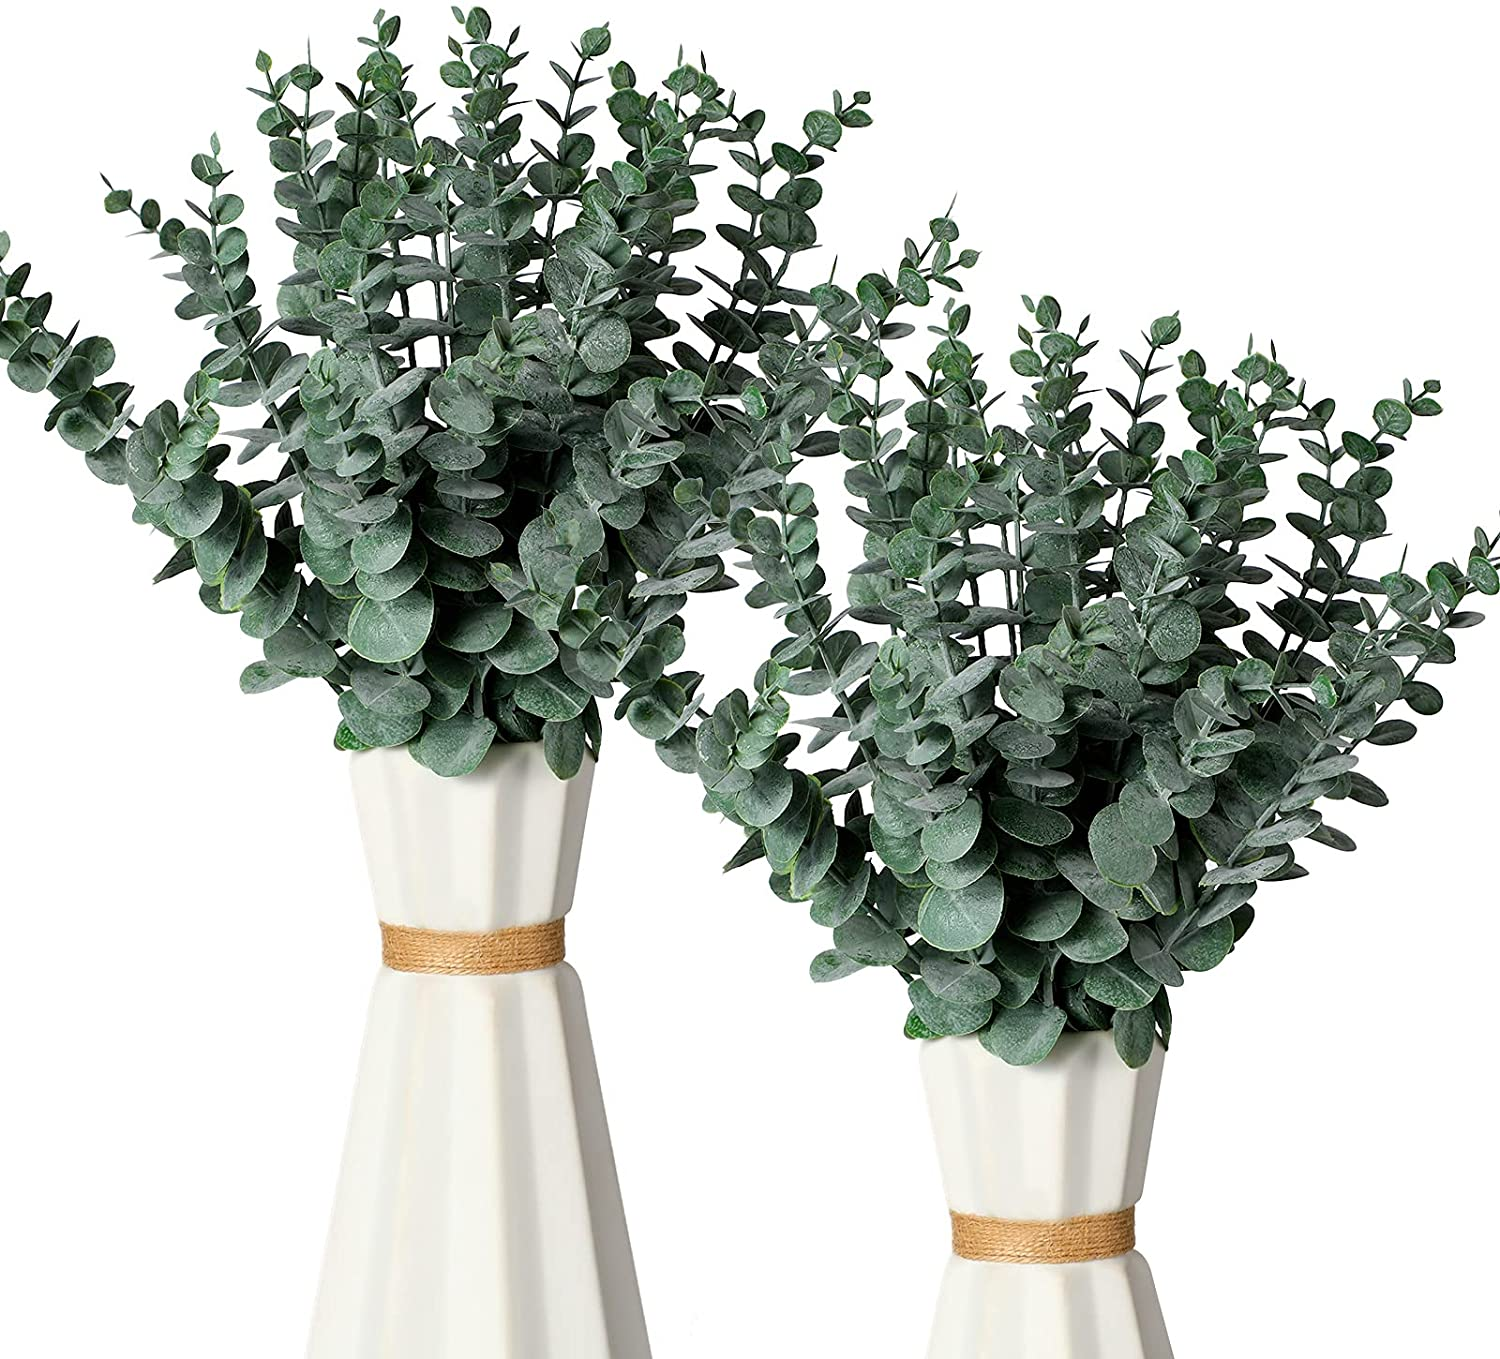 30 Pieces Artificial Eucalyptus Stem Touch F Online limited product 2021 autumn and winter new Inch Realistic 14.1